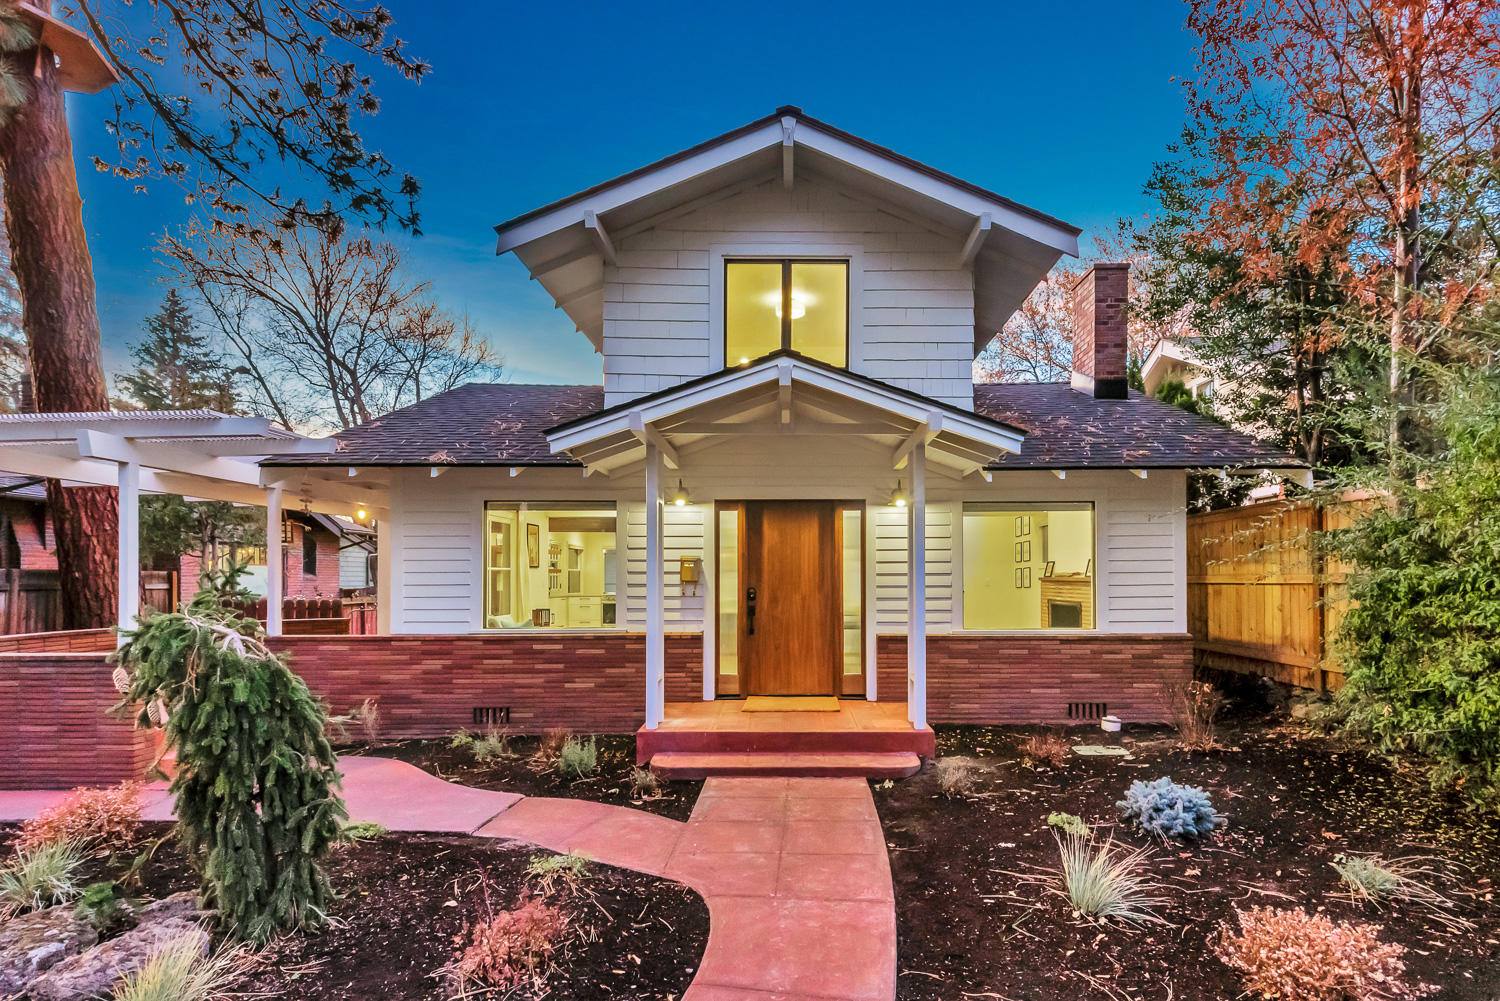 This one of a kind opportunity to own an ACTIVE VACATION RENTAL in Bend's most charming neighborhood is here! The Historic Claypool House has been given new life & is the perfect home away from home. This century old piece of history has been lovingly restored & rebuilt from the inside out, blending historical preservation with 21st century luxury to create a family legacy for another 100 years. No detail was overlooked, from all new electrical wiring, plumbing, framing, insulation, windows, doors, roof, the list goes on. The floor plan has been thoughtfully redesigned to modern standards, maximizing the space for large family gatherings, indoor/outdoor entertaining, yet intimate for those who desire a full time residence or second home. Explore the surrounding tree lined streets, Drake Park, Deschutes River and charming downtown, all within blocks of this home. Whether it's your next income property, a second home or your forever home, this is surely an investment into Bend's future.